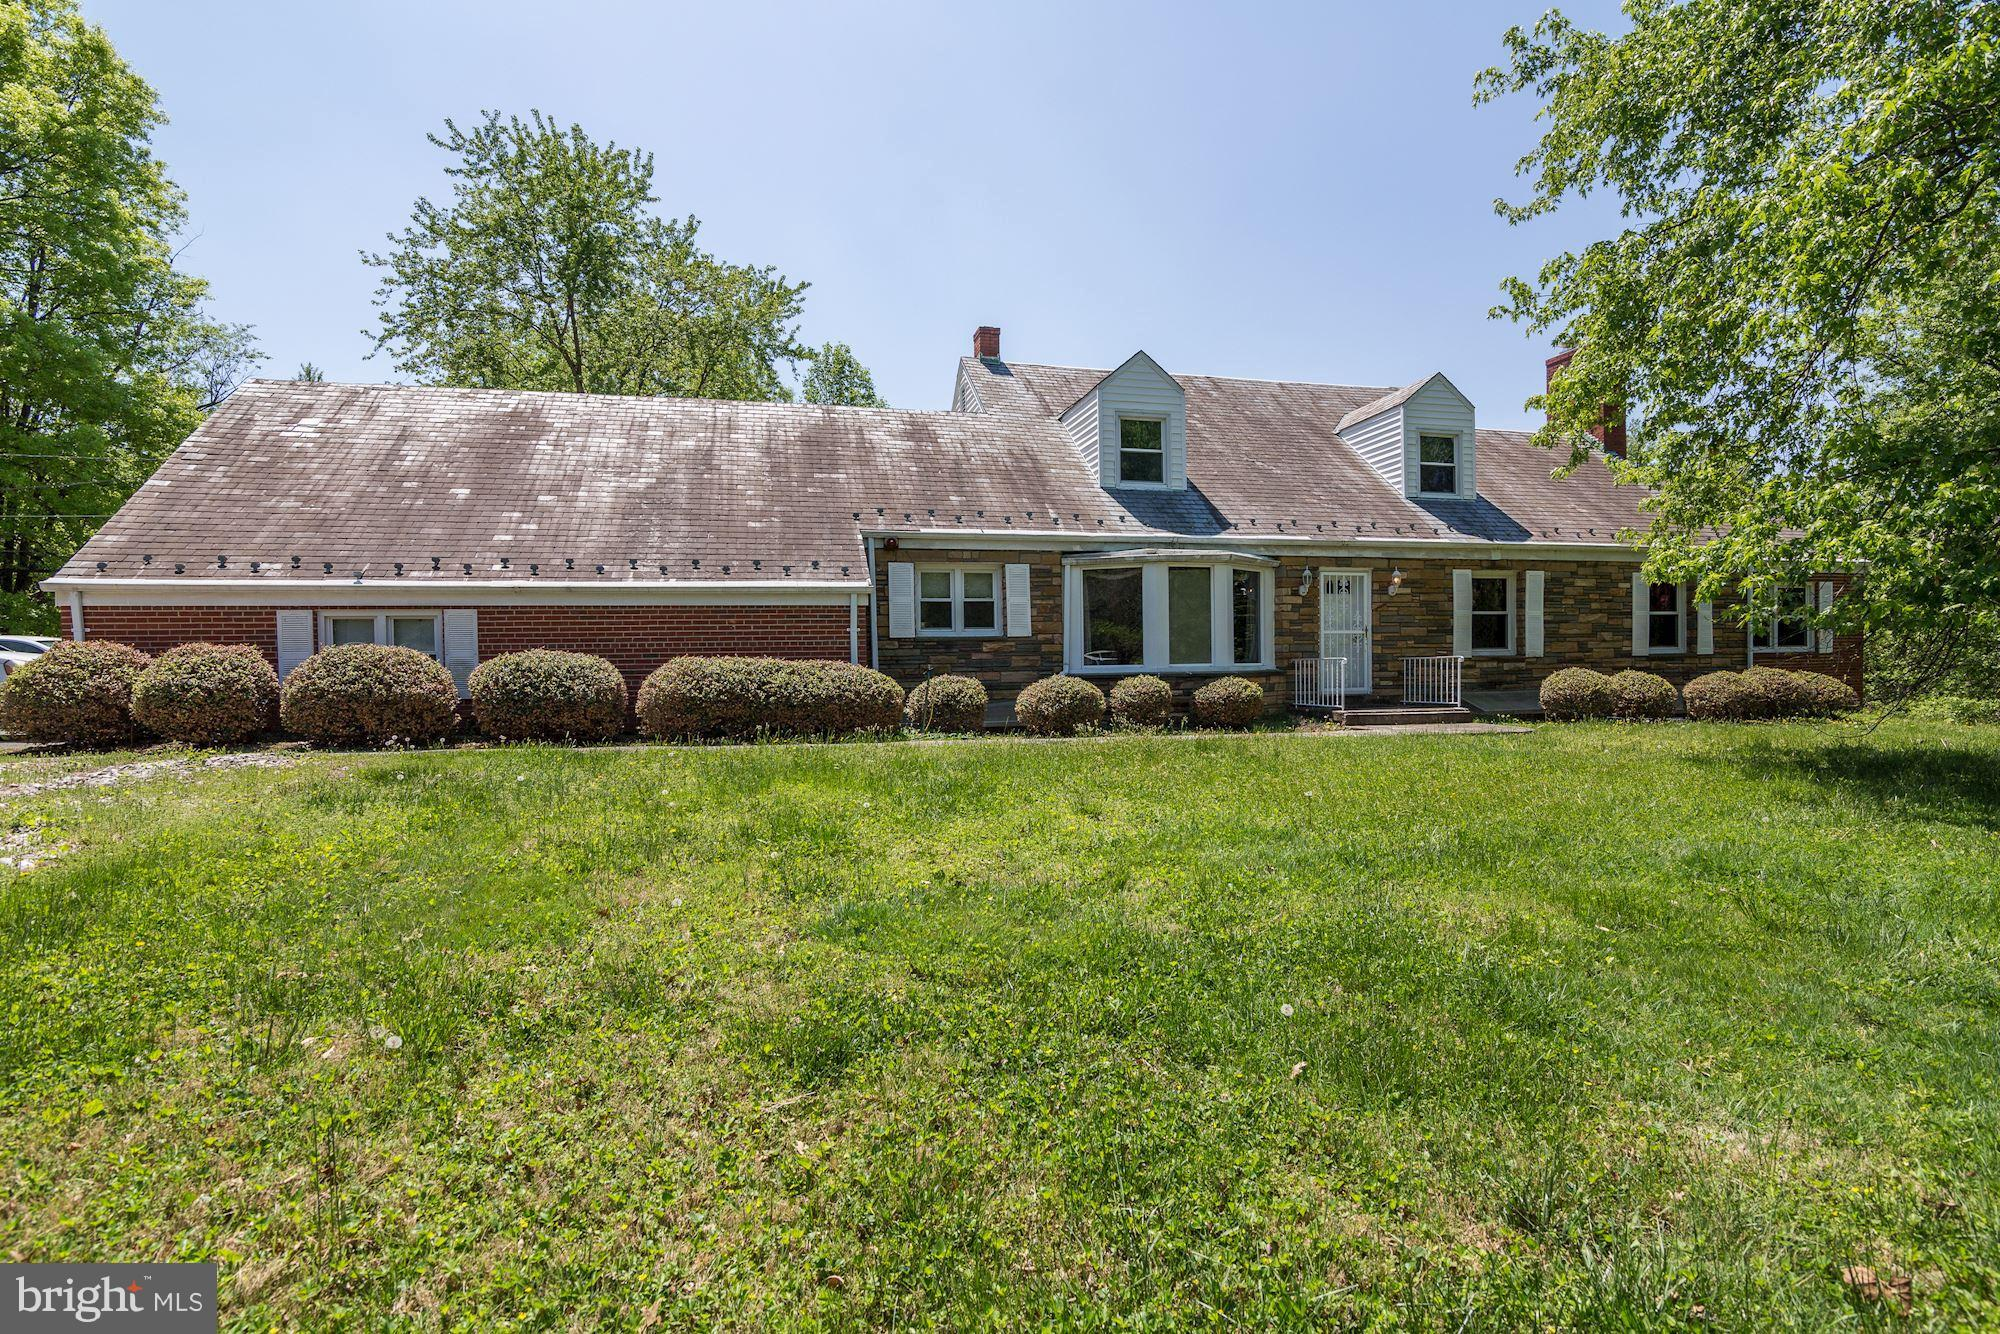 407 SHERBROOK Dr, Silver Spring, MD, 20904